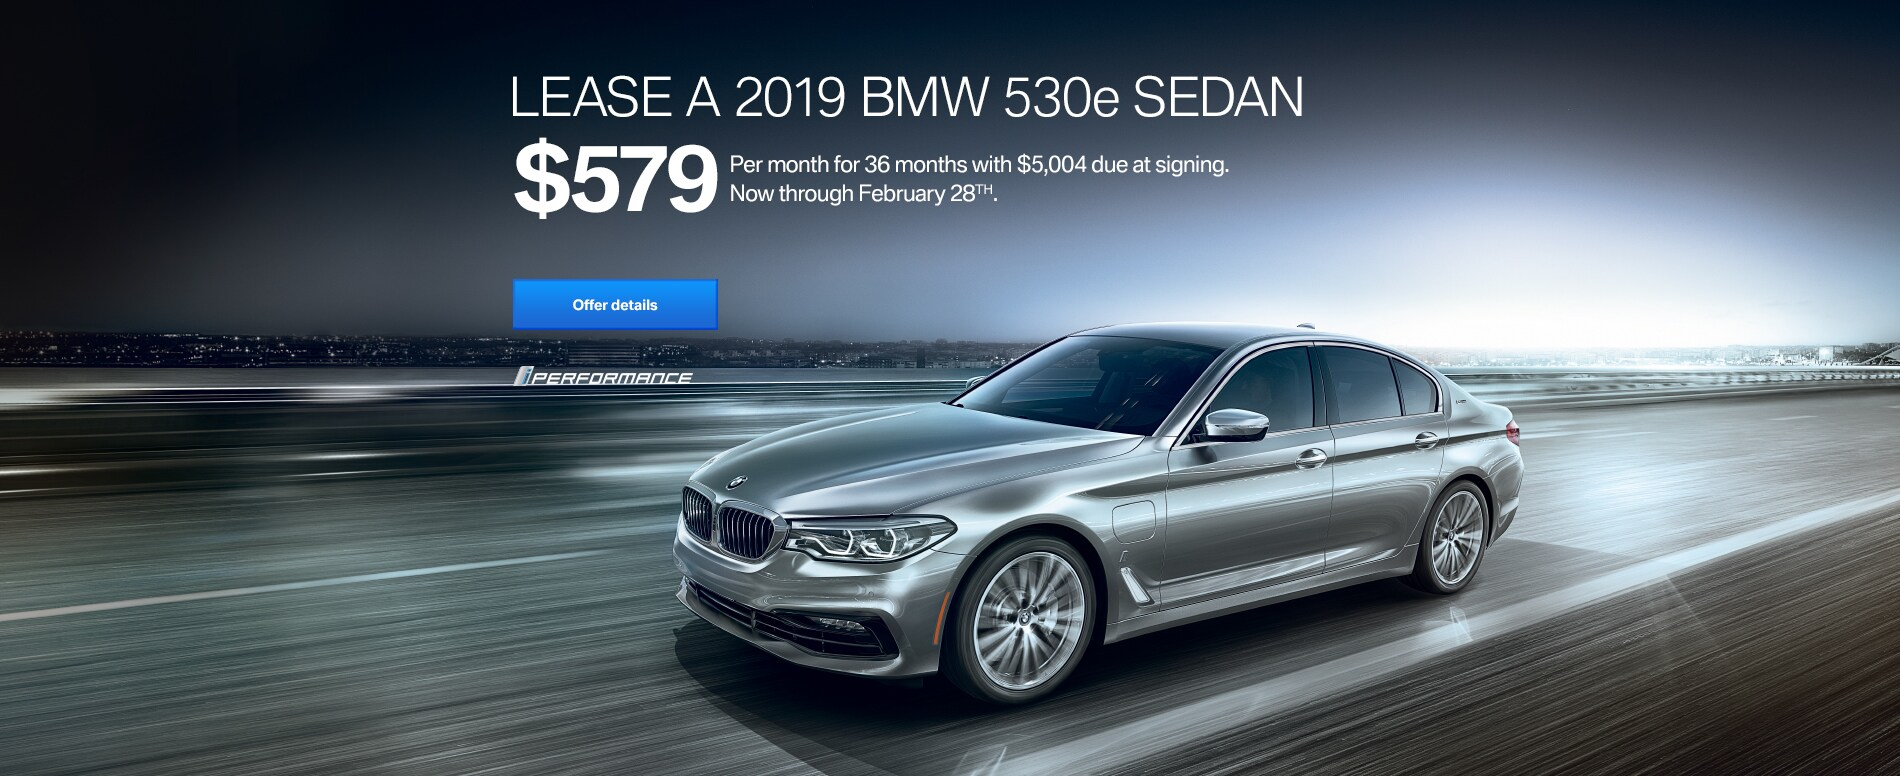 LEASE A 2019 BMW 530E FOR $569/MONTH FOR 36 MONTHS WITH